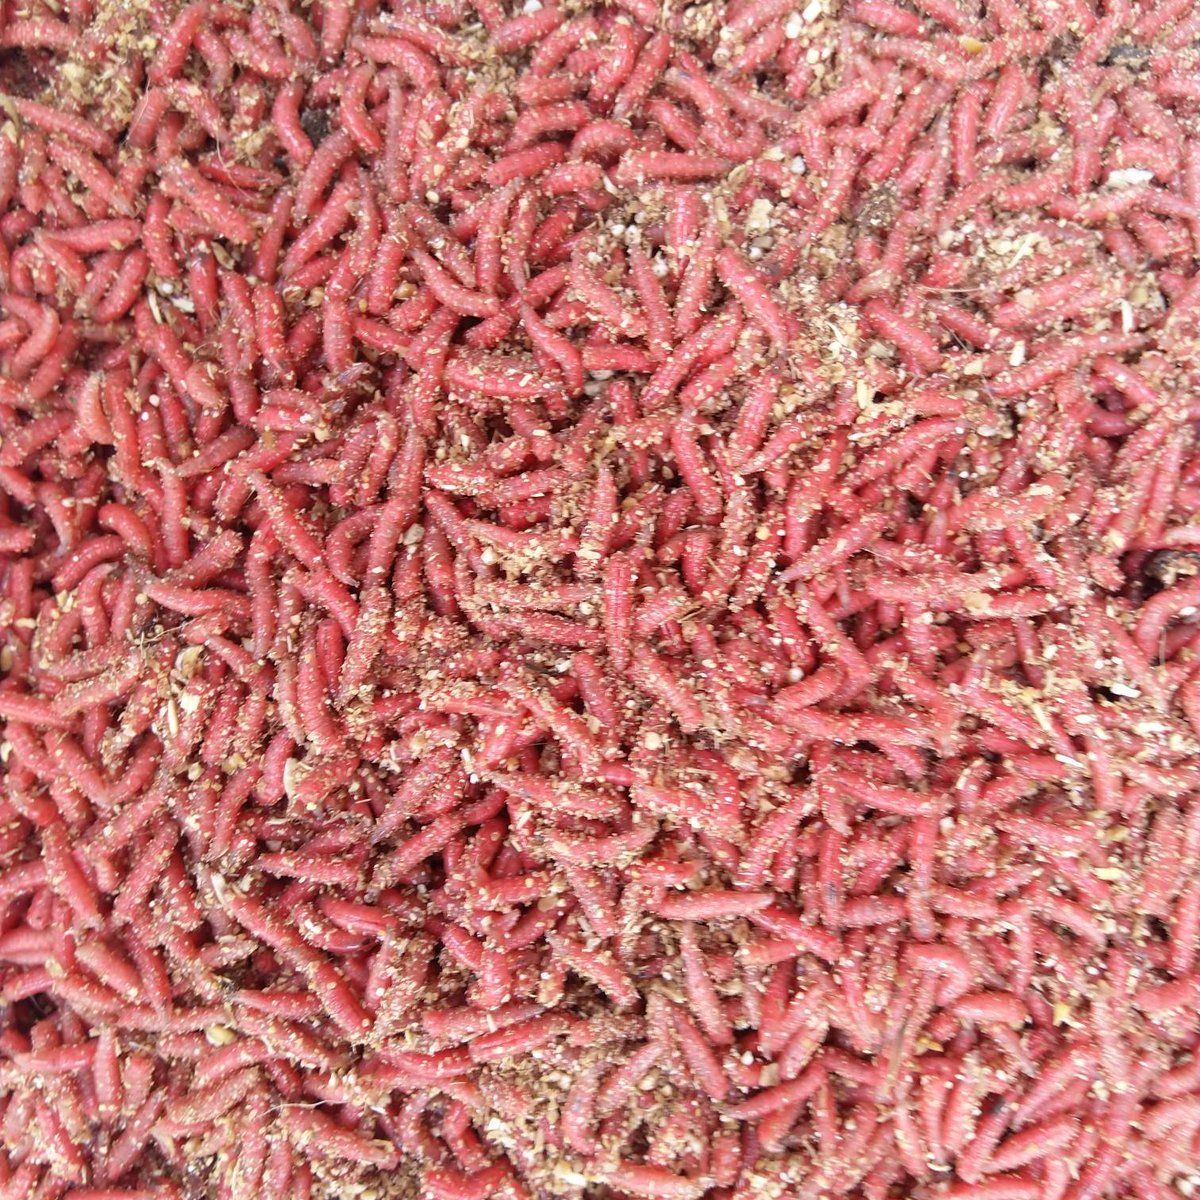 Fresh maggot, caster and worm, <b>Ready</b> for the weekend.... #RumBridgeFisheries #carpfishing #Su